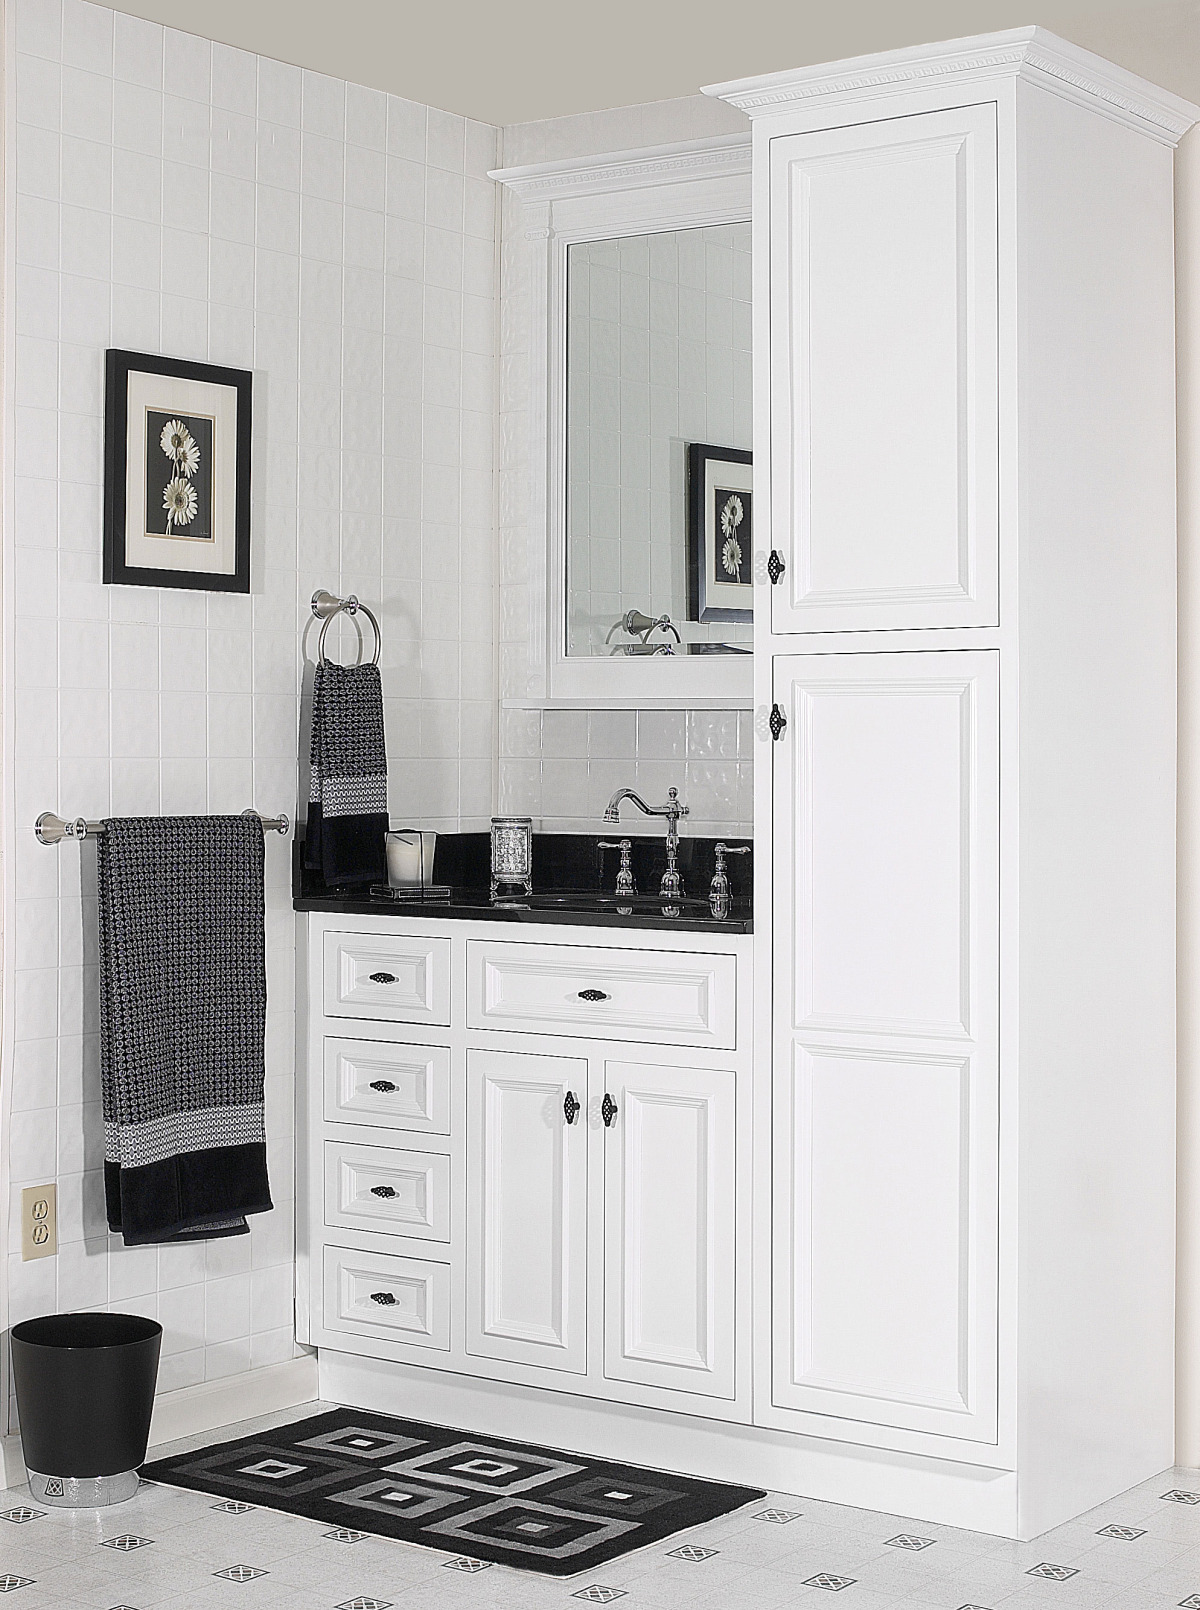 Bathroom vanity premium kitchen cabinets for Bathroom vanities and cabinets